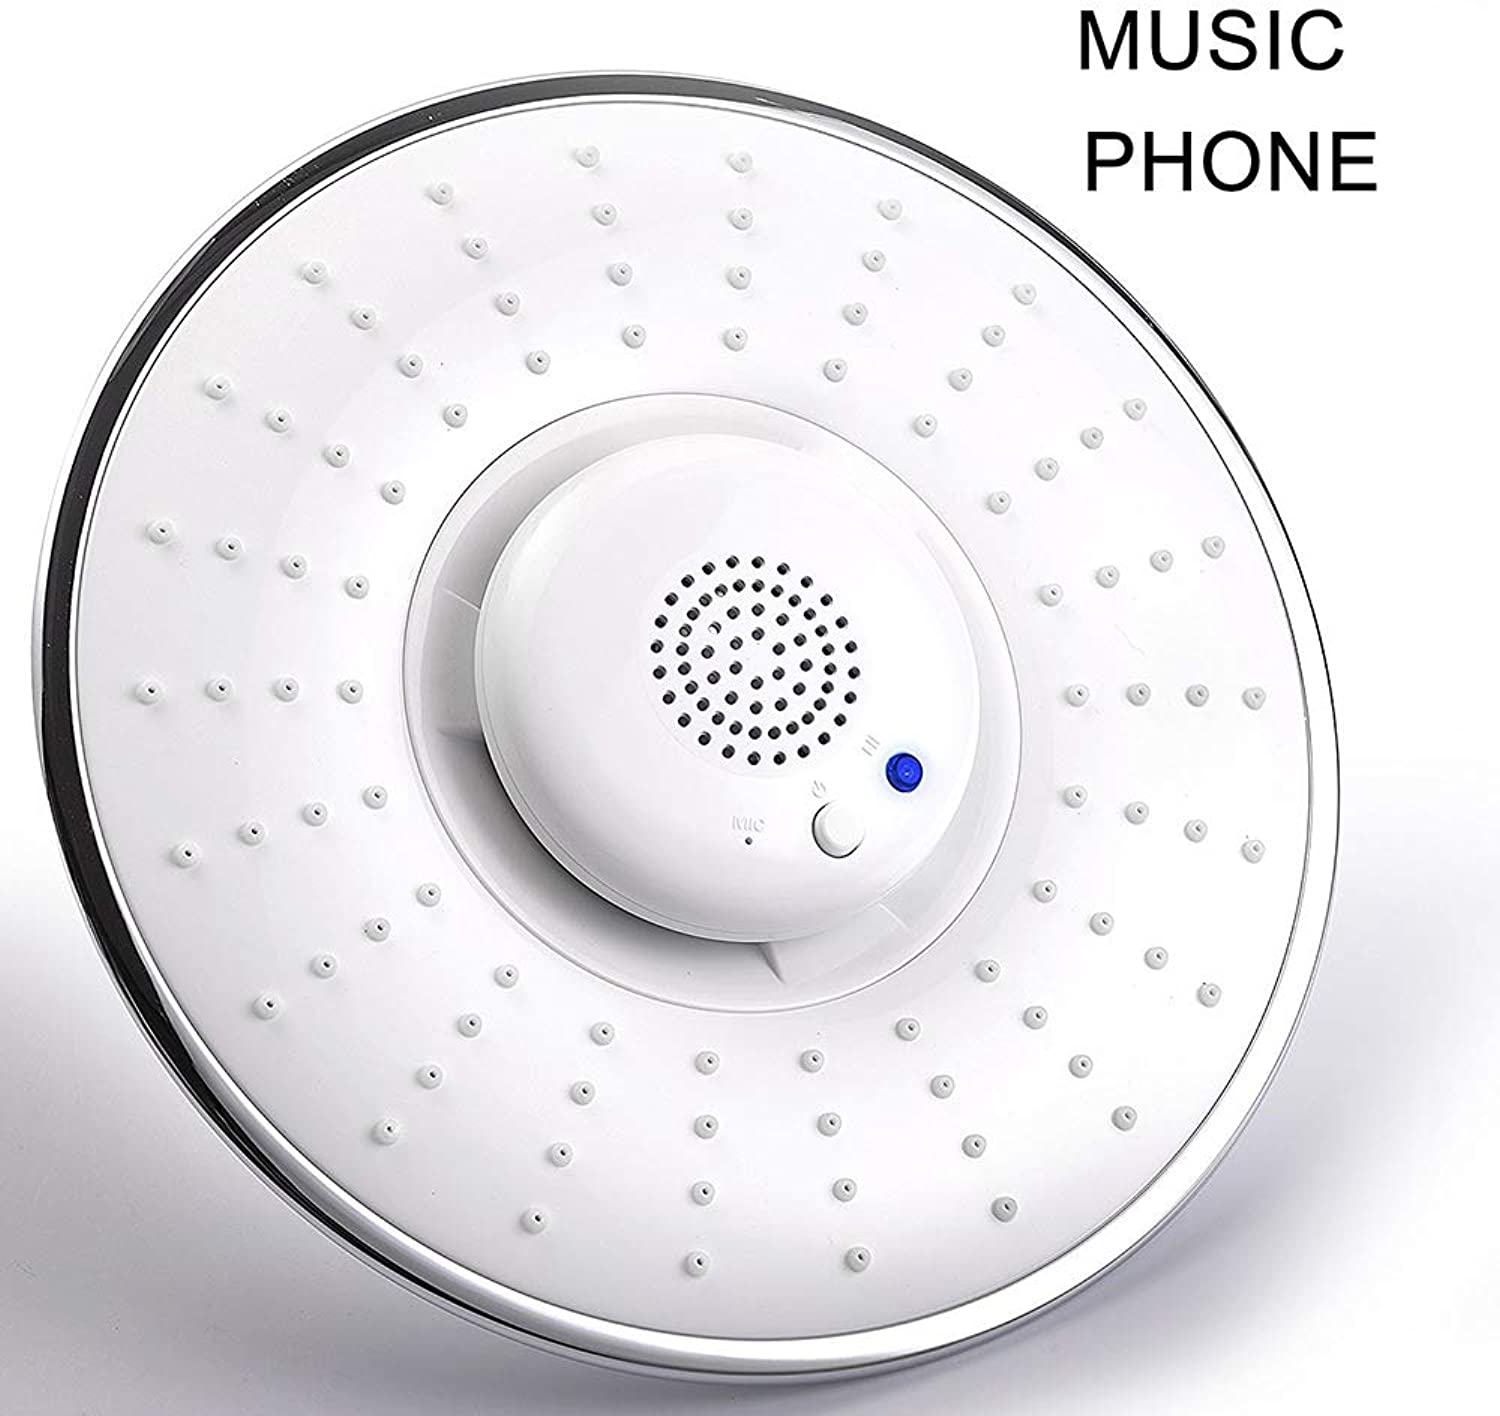 HDLWIS Music phone shower head, Creative home music shower top shower head, Built-in Waterproof blueetooth for calling, white